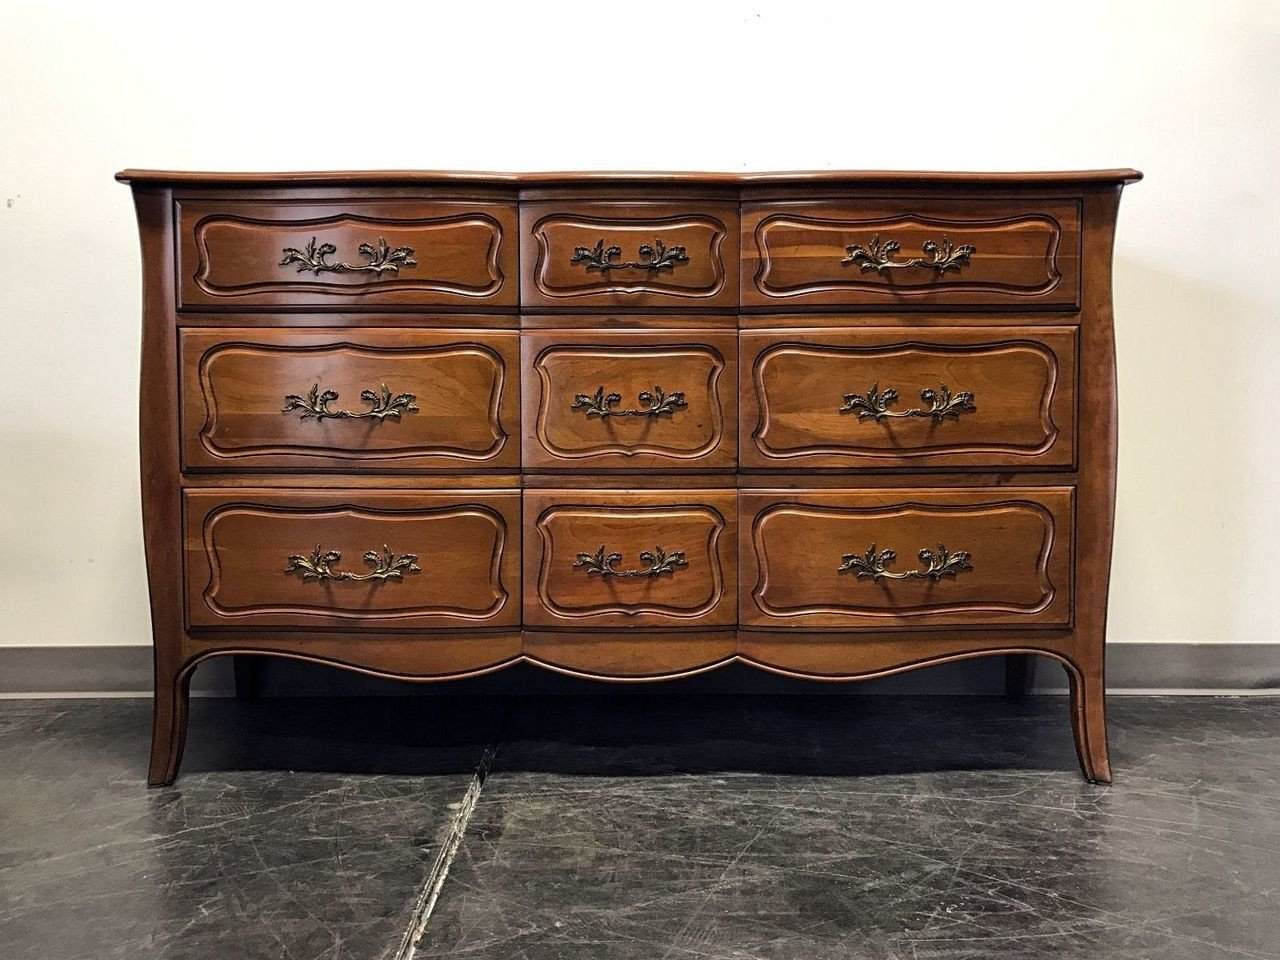 French Provincial Bedroom Furniture Lovely sold Out Davis Cabinet Co French Provincial solid Cherry 9 Drawer Triple Dresser